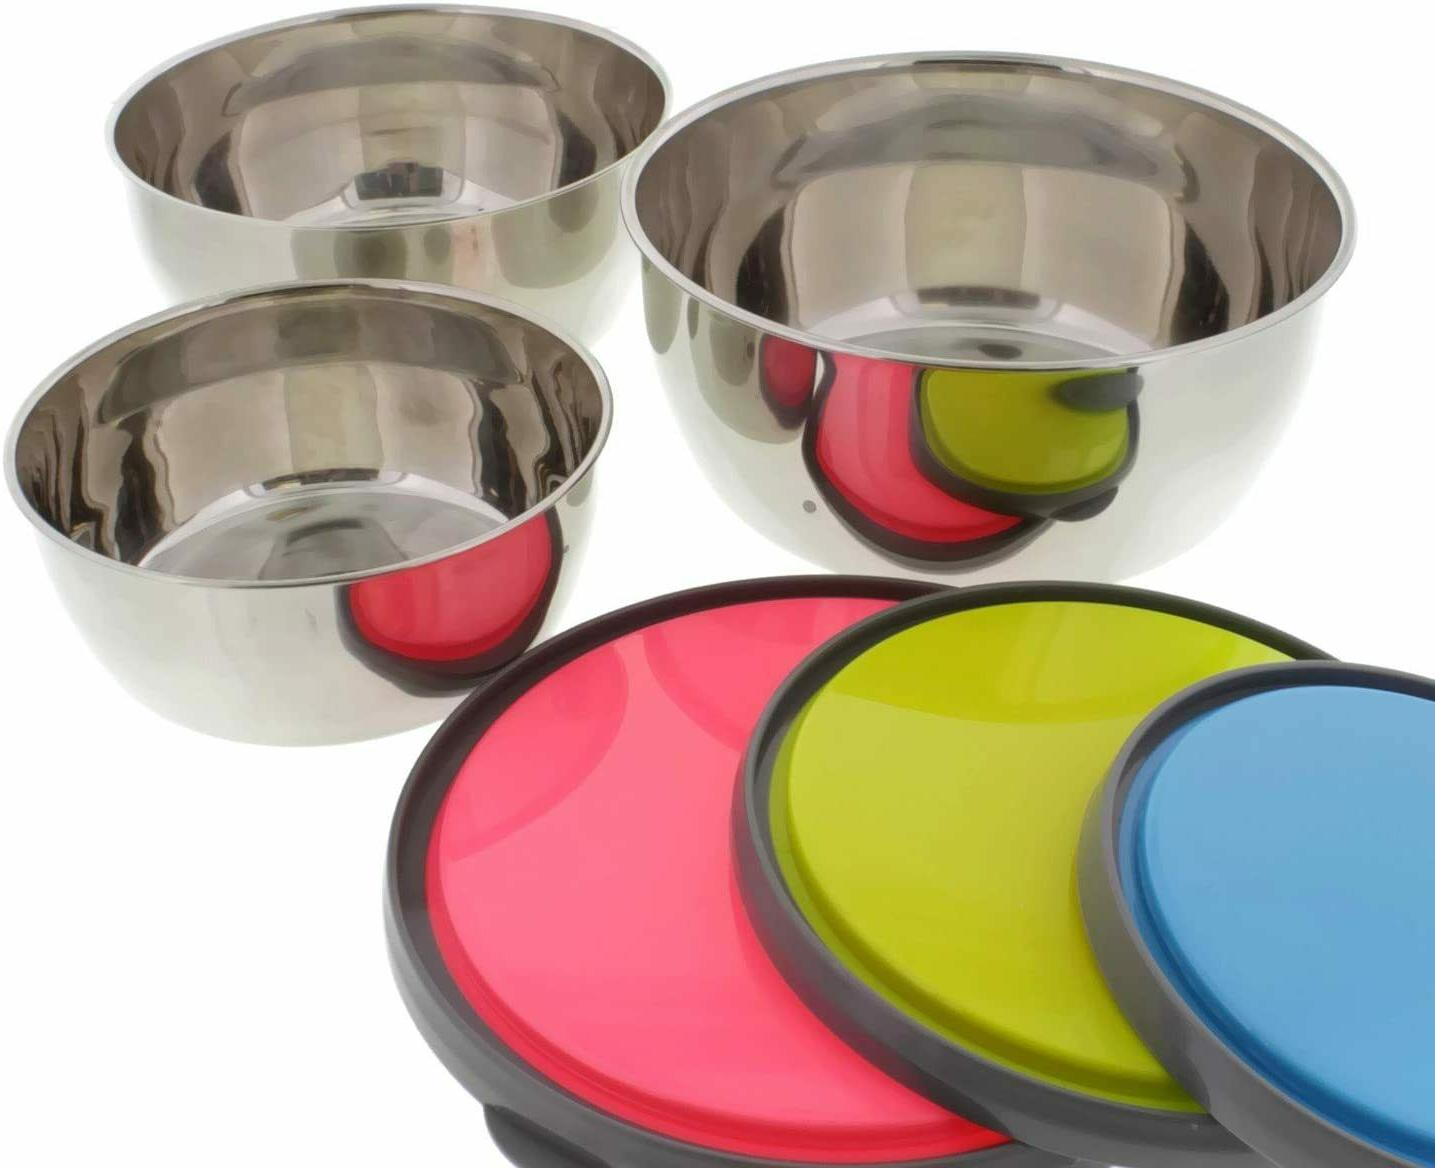 Set 3 Stainless Steel Containers Bowls w/